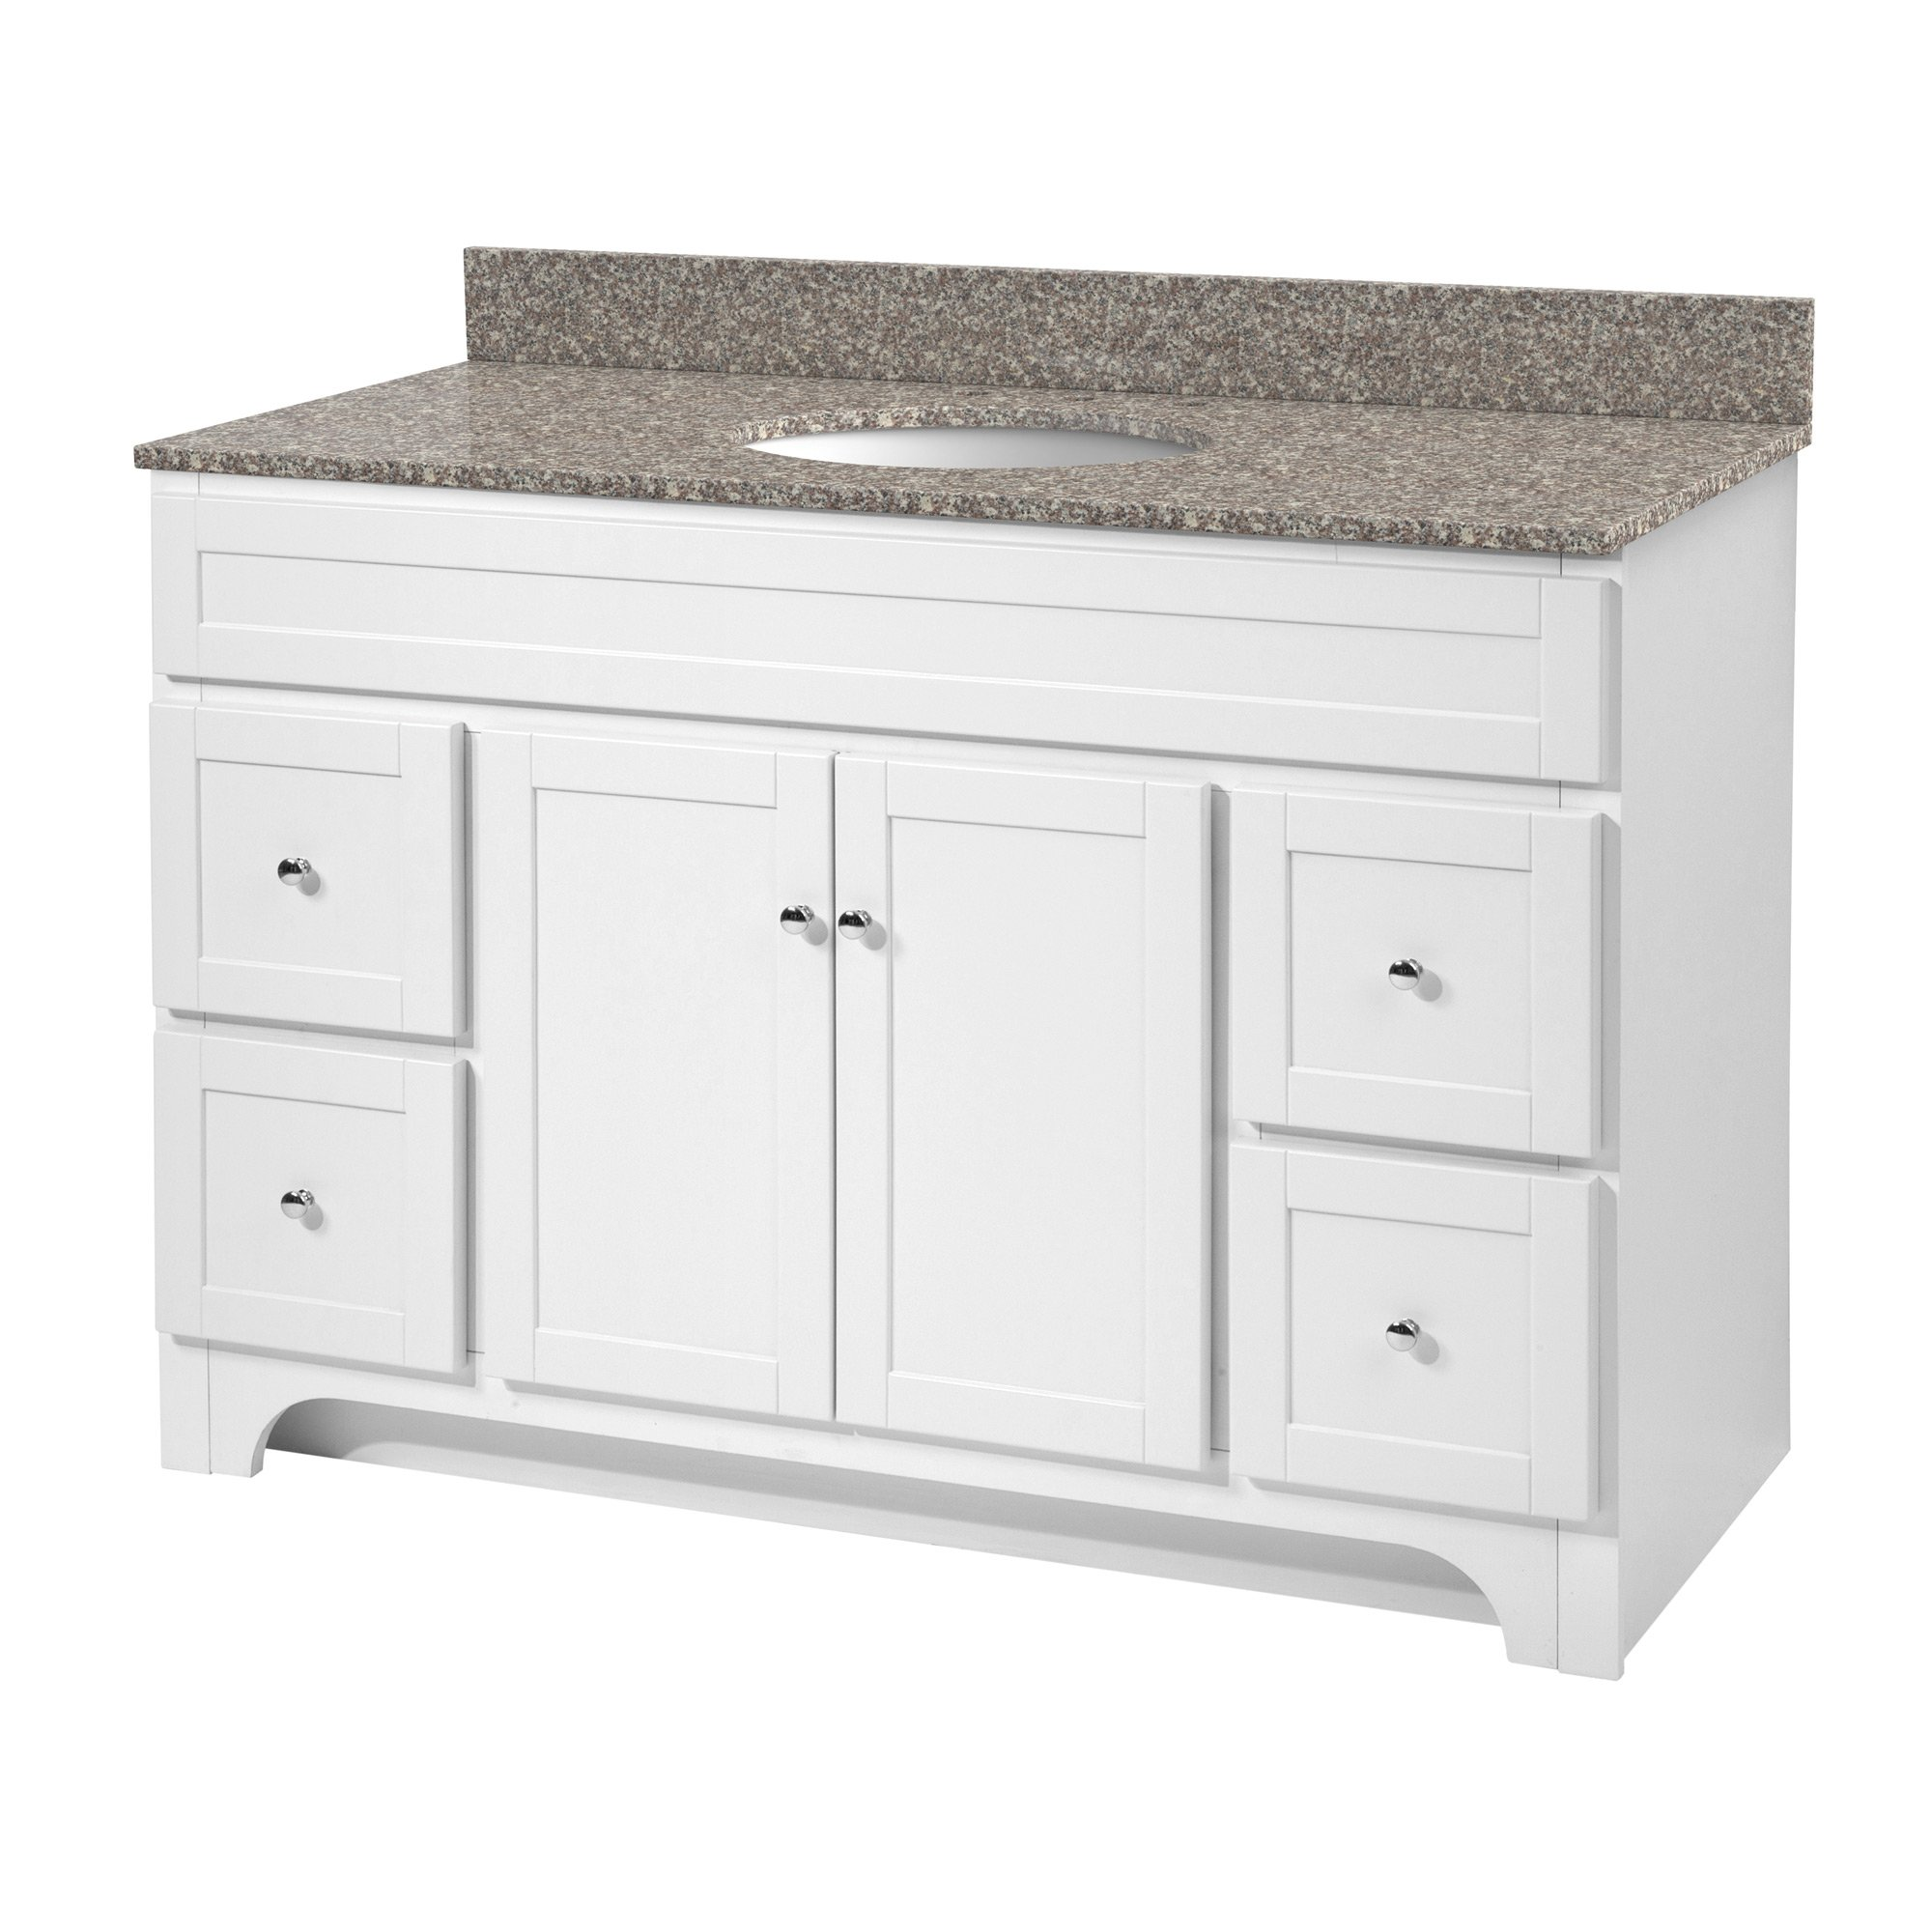 Foremost WRWA4821D Worthington 48 Inch White Bathroom Vanity